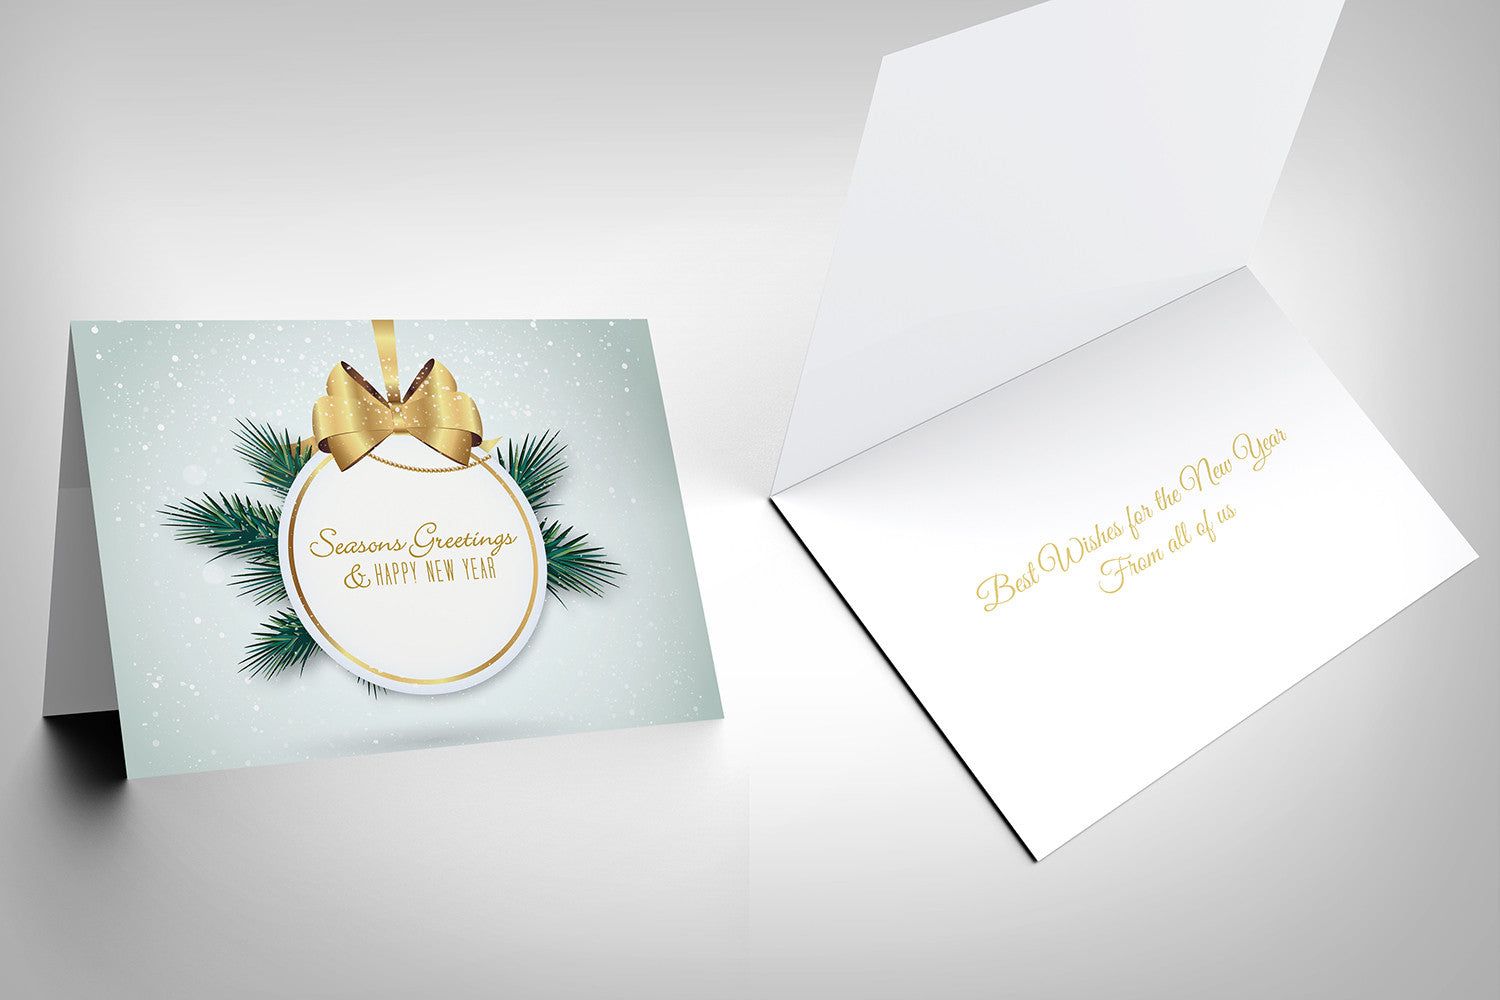 Seasons Greeting Card Design P